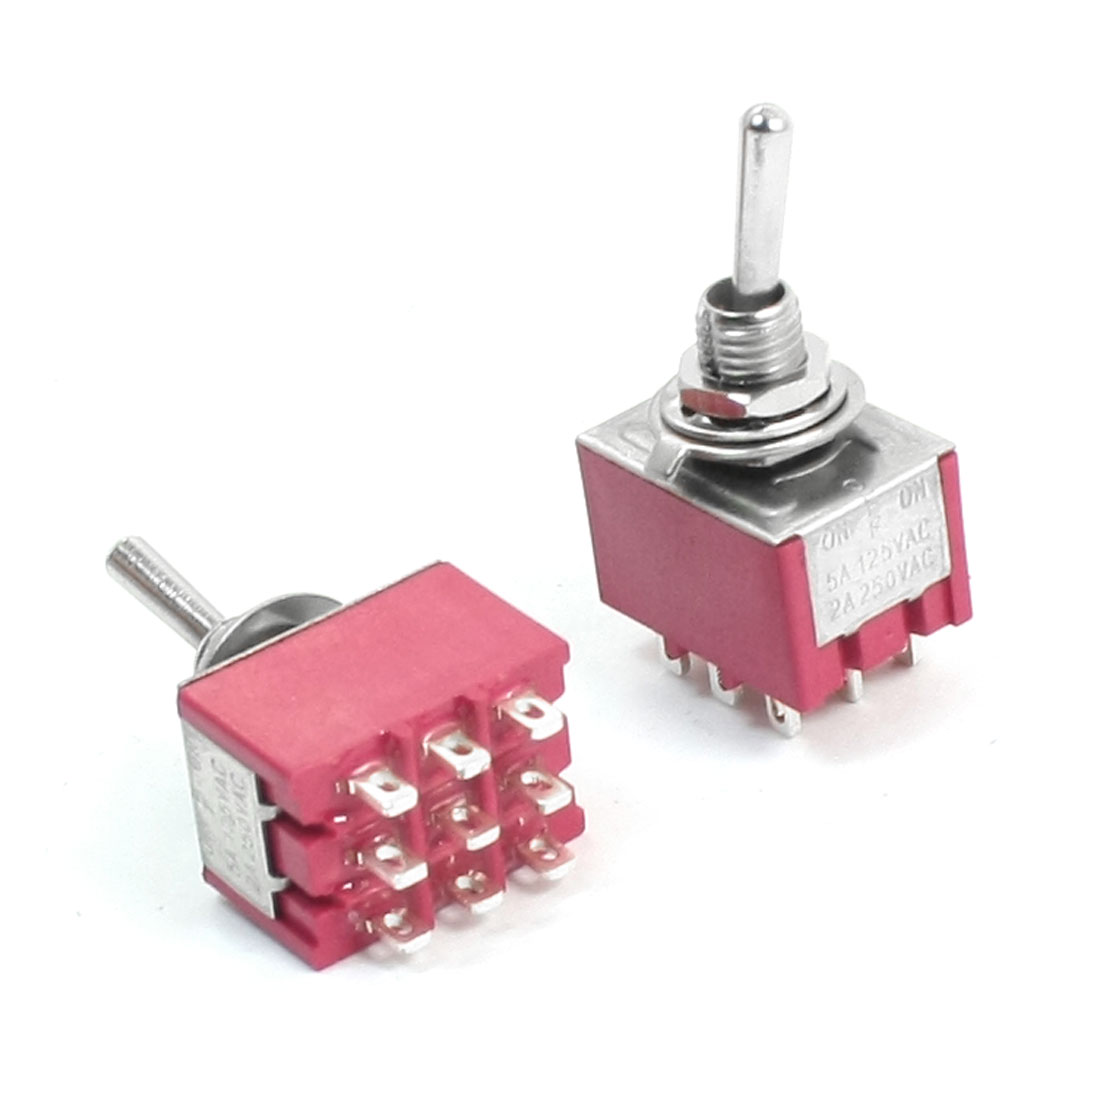 AC 125V 5A ON/OFF/ON 3 Positions 9 Pin Self Locking Toggle Switch Red 2pcs